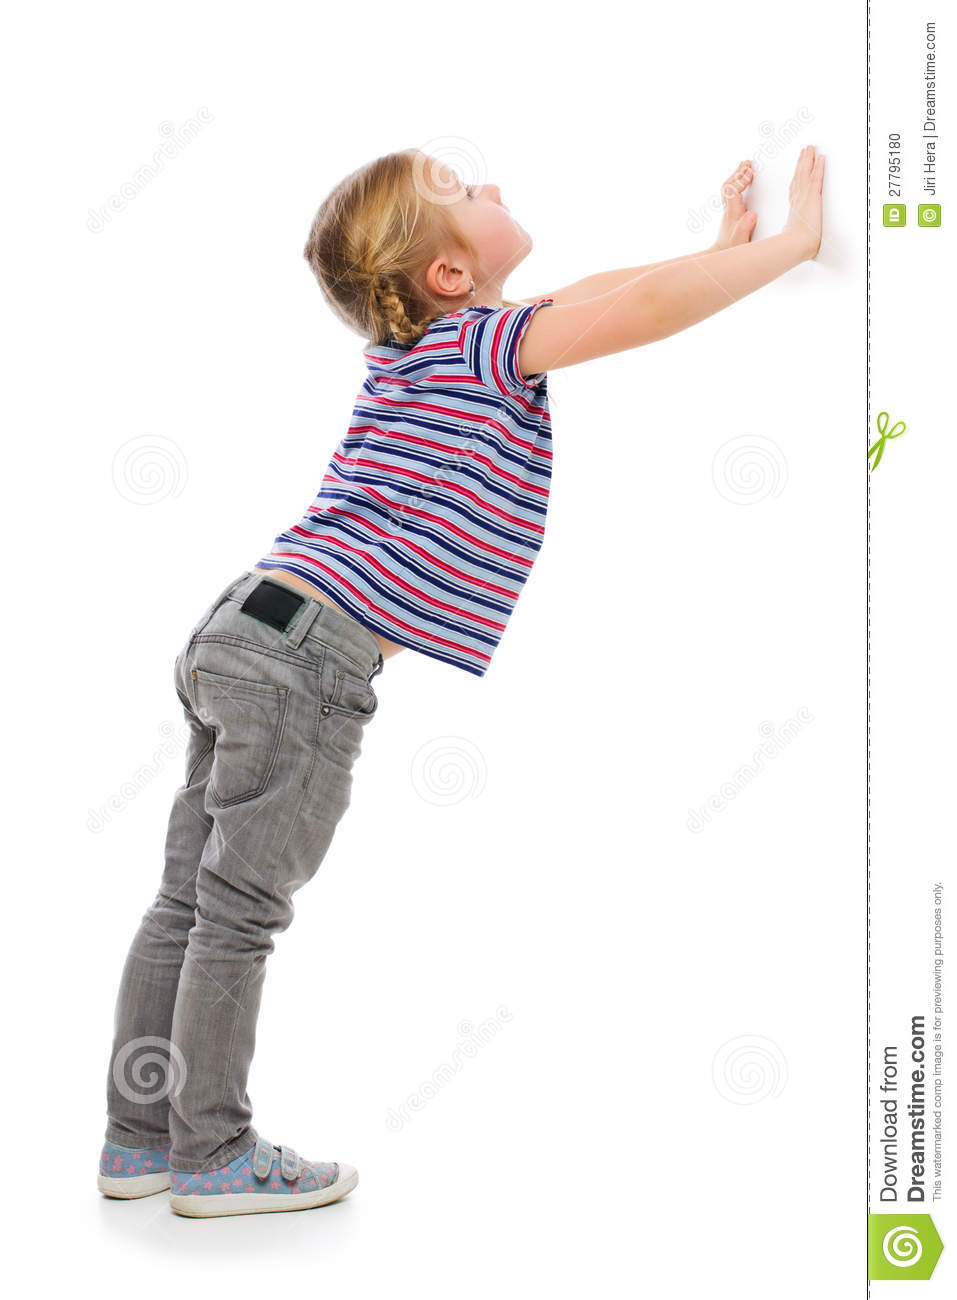 Little Girl Leaning Against A White Wall Stock Photo  Image 27795180